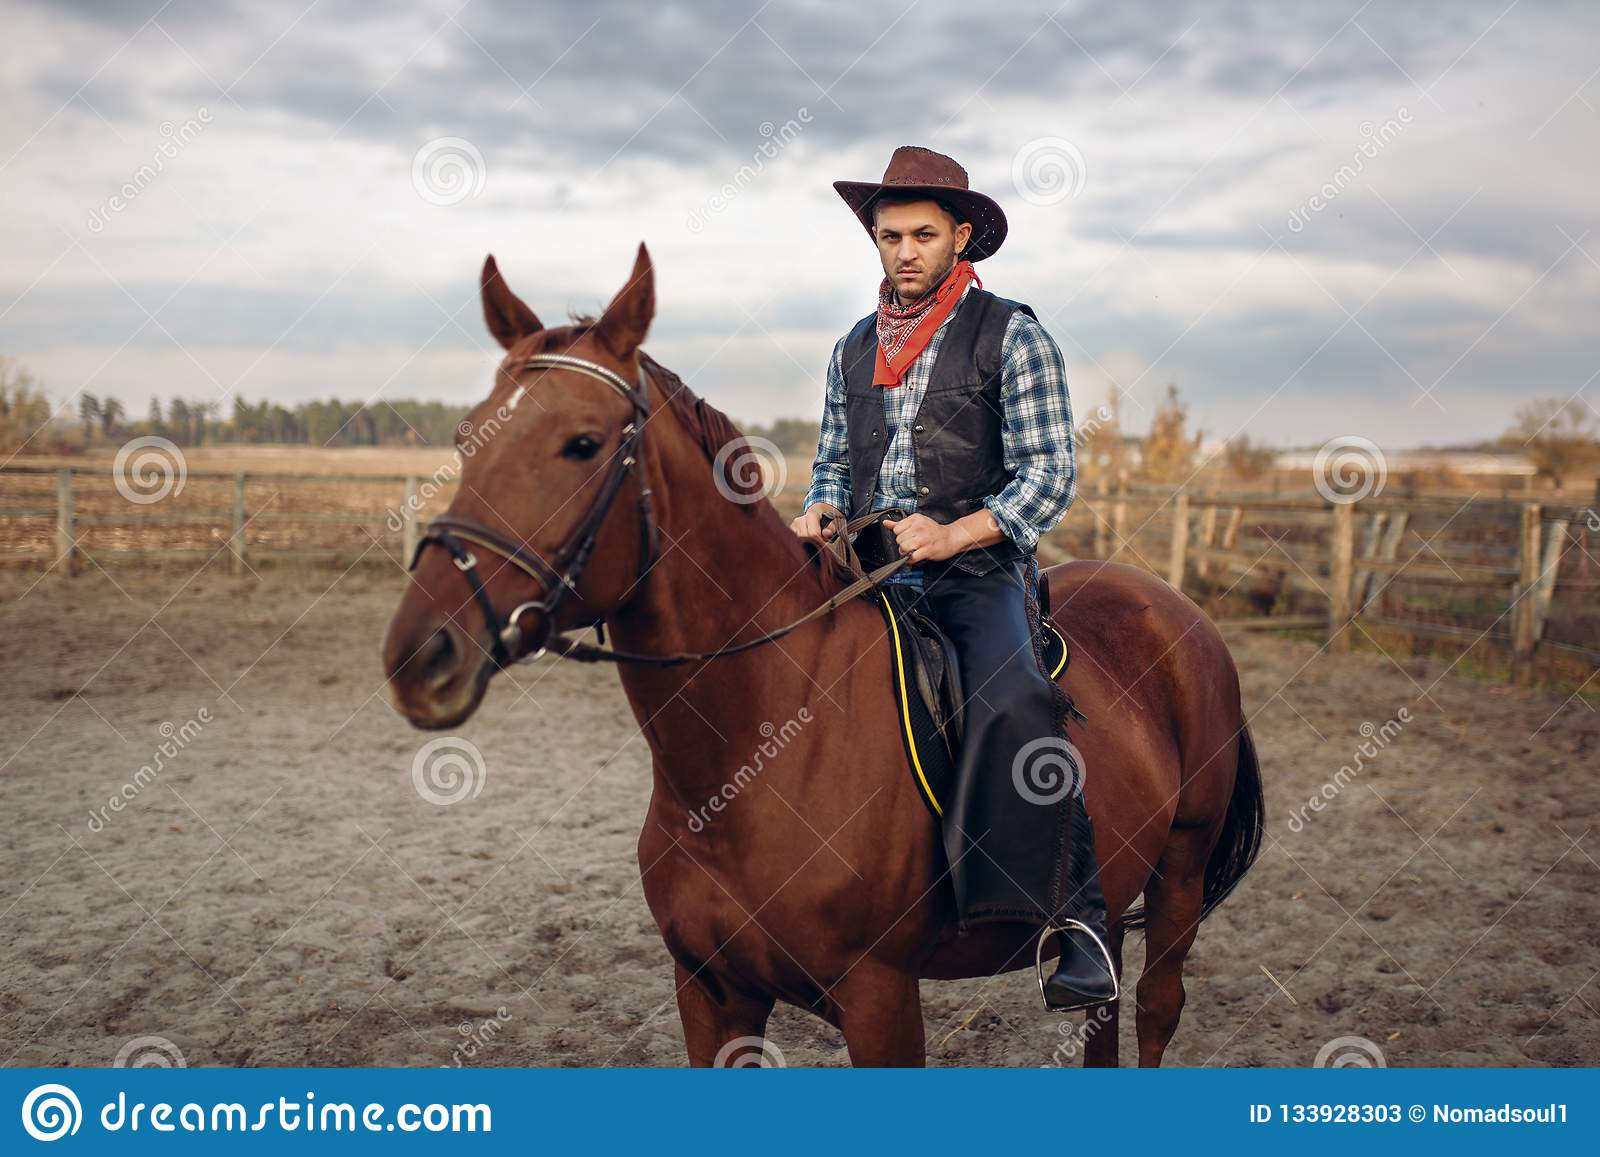 Cowboy Riding A Horse In Desert Valley Western Stock Image Image Of Revolver Riding 133928303